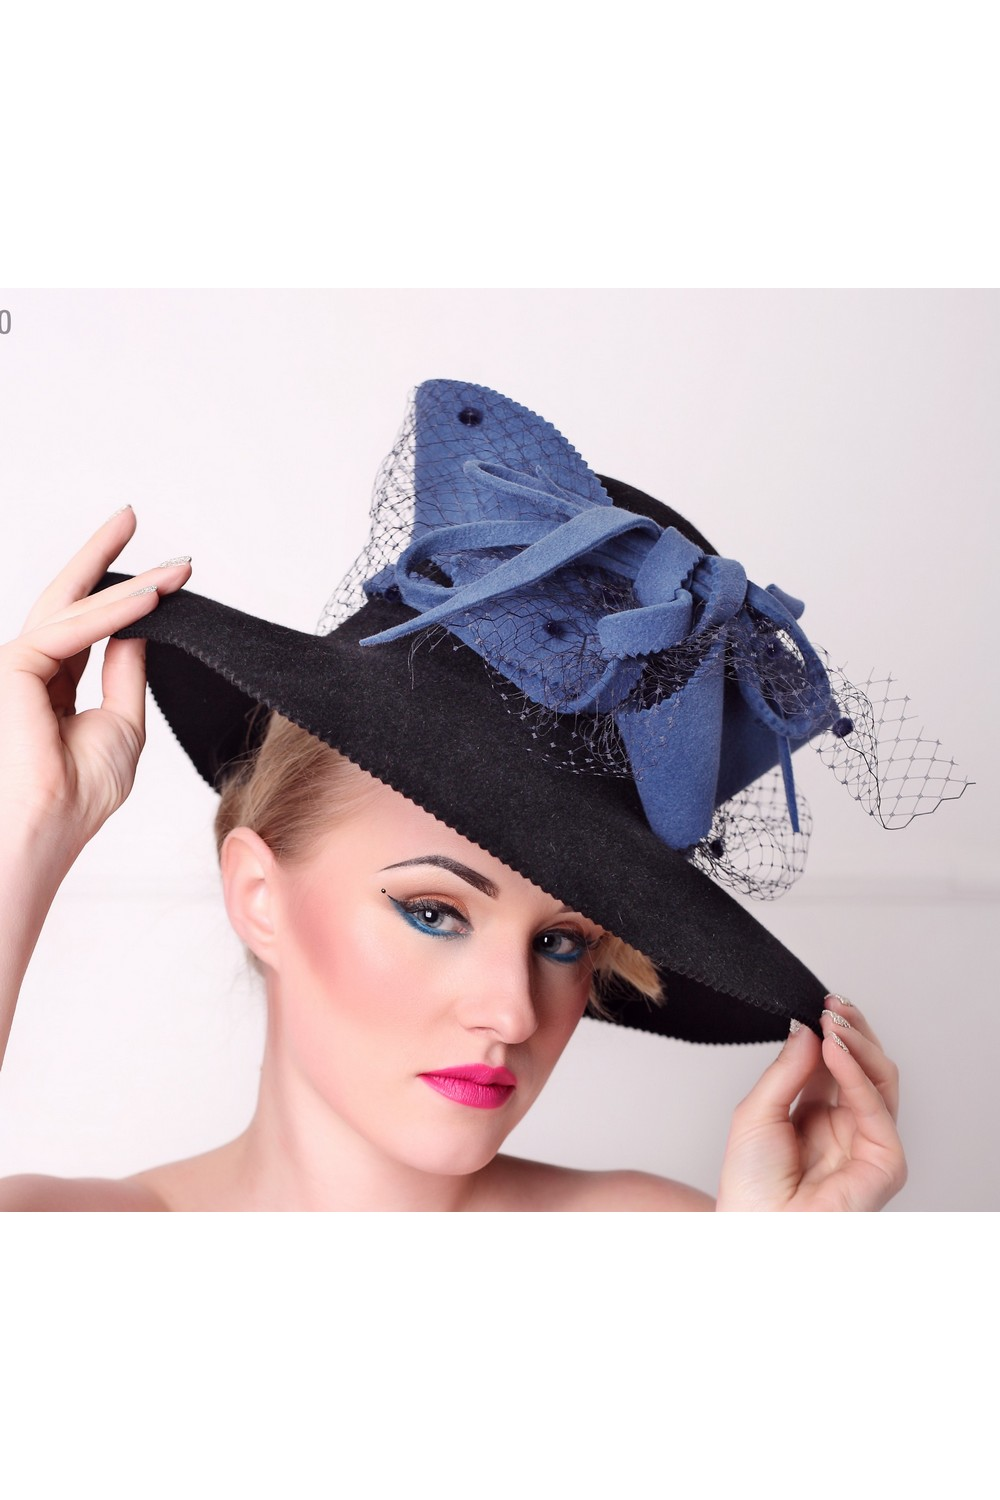 Buy Black women`s felt top hat with blue bow and veil, Unique designer stylish hat